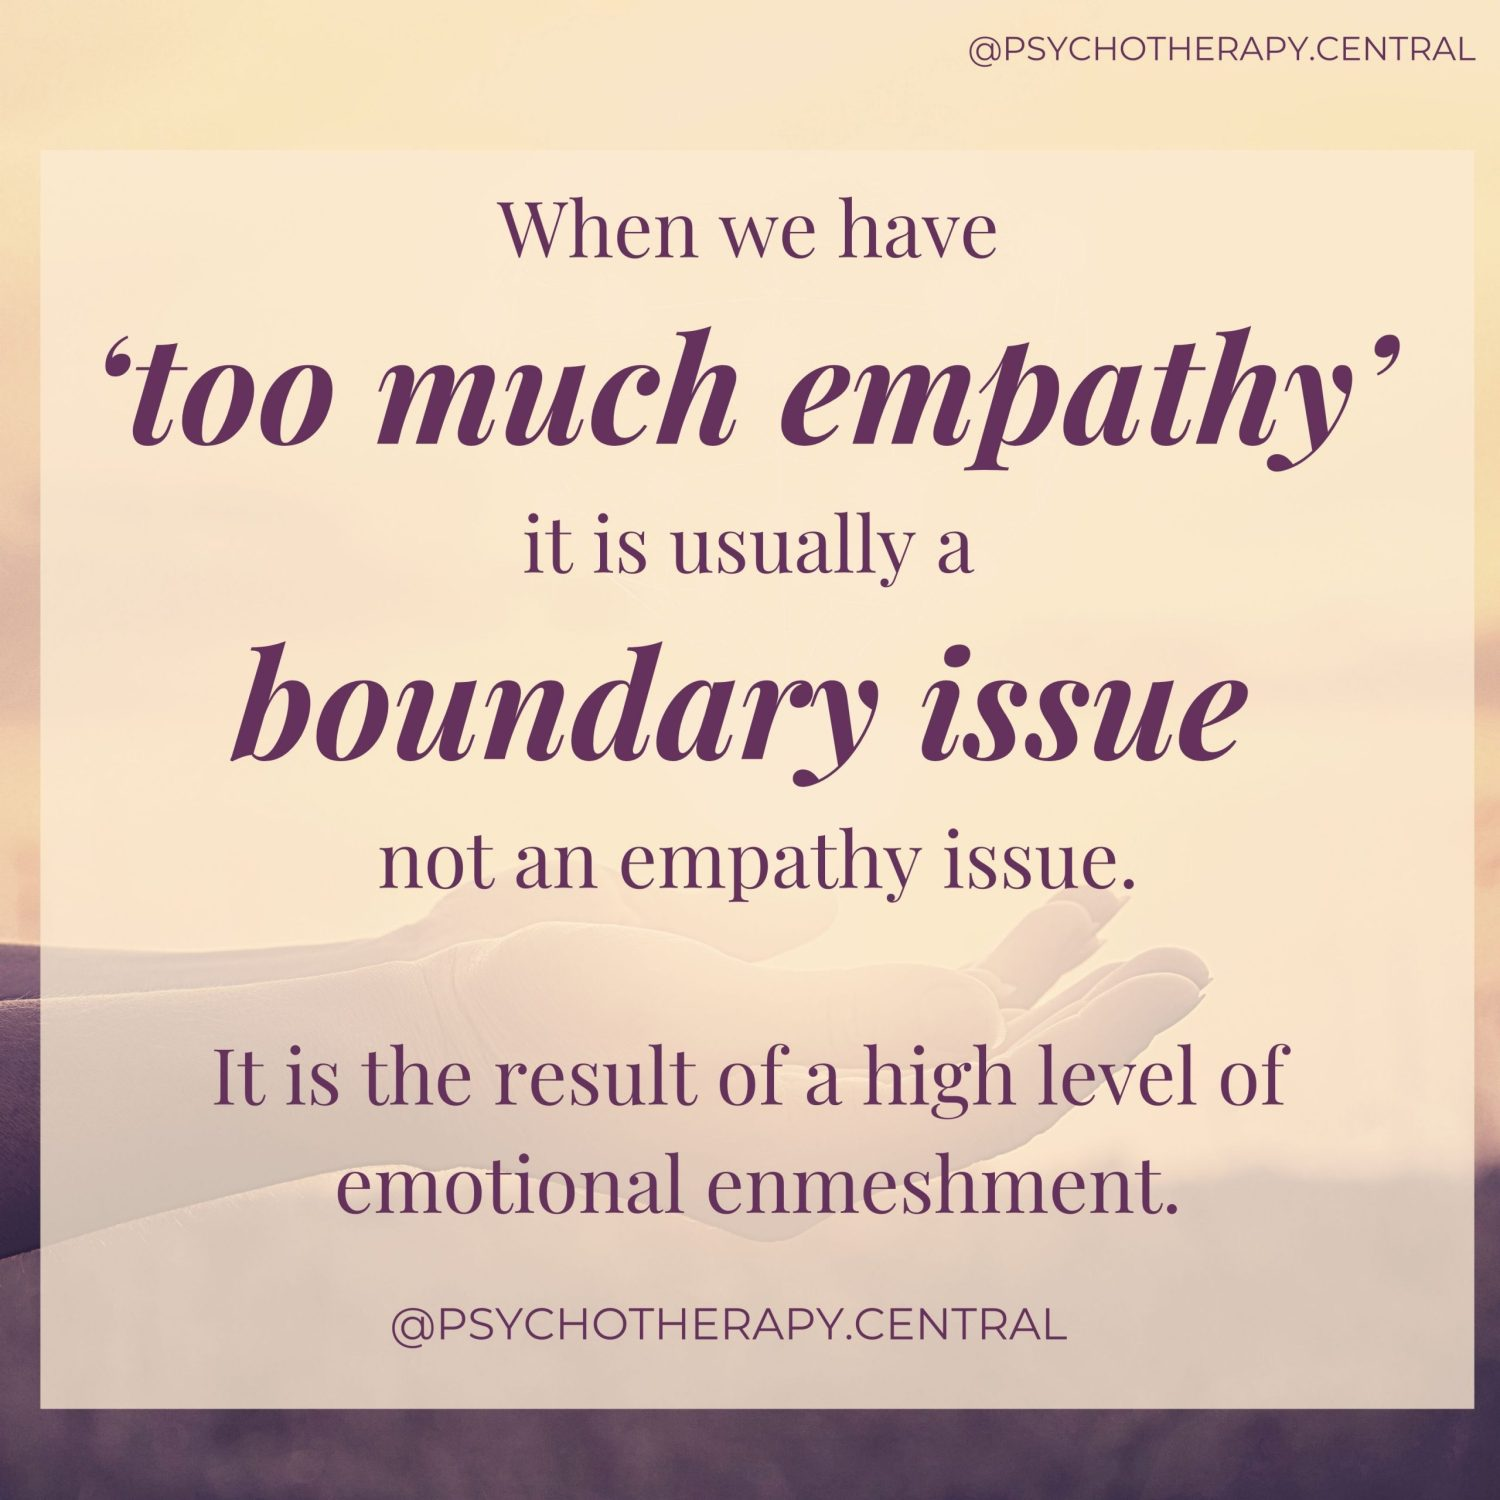 too much empathy